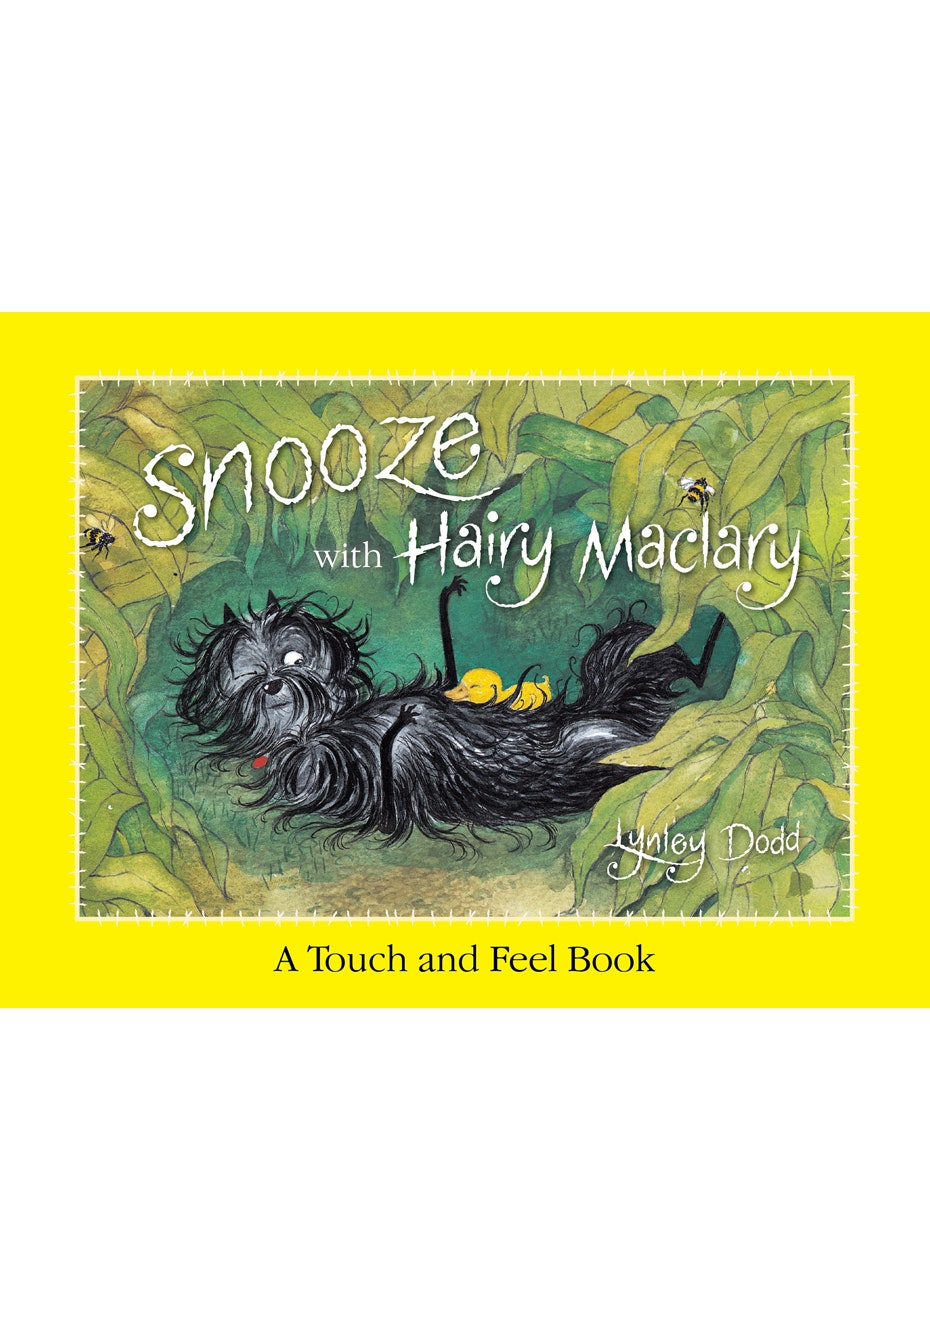 Snooze with Hairy Maclary: A Touch and Feel Book, By Lynley Dodd